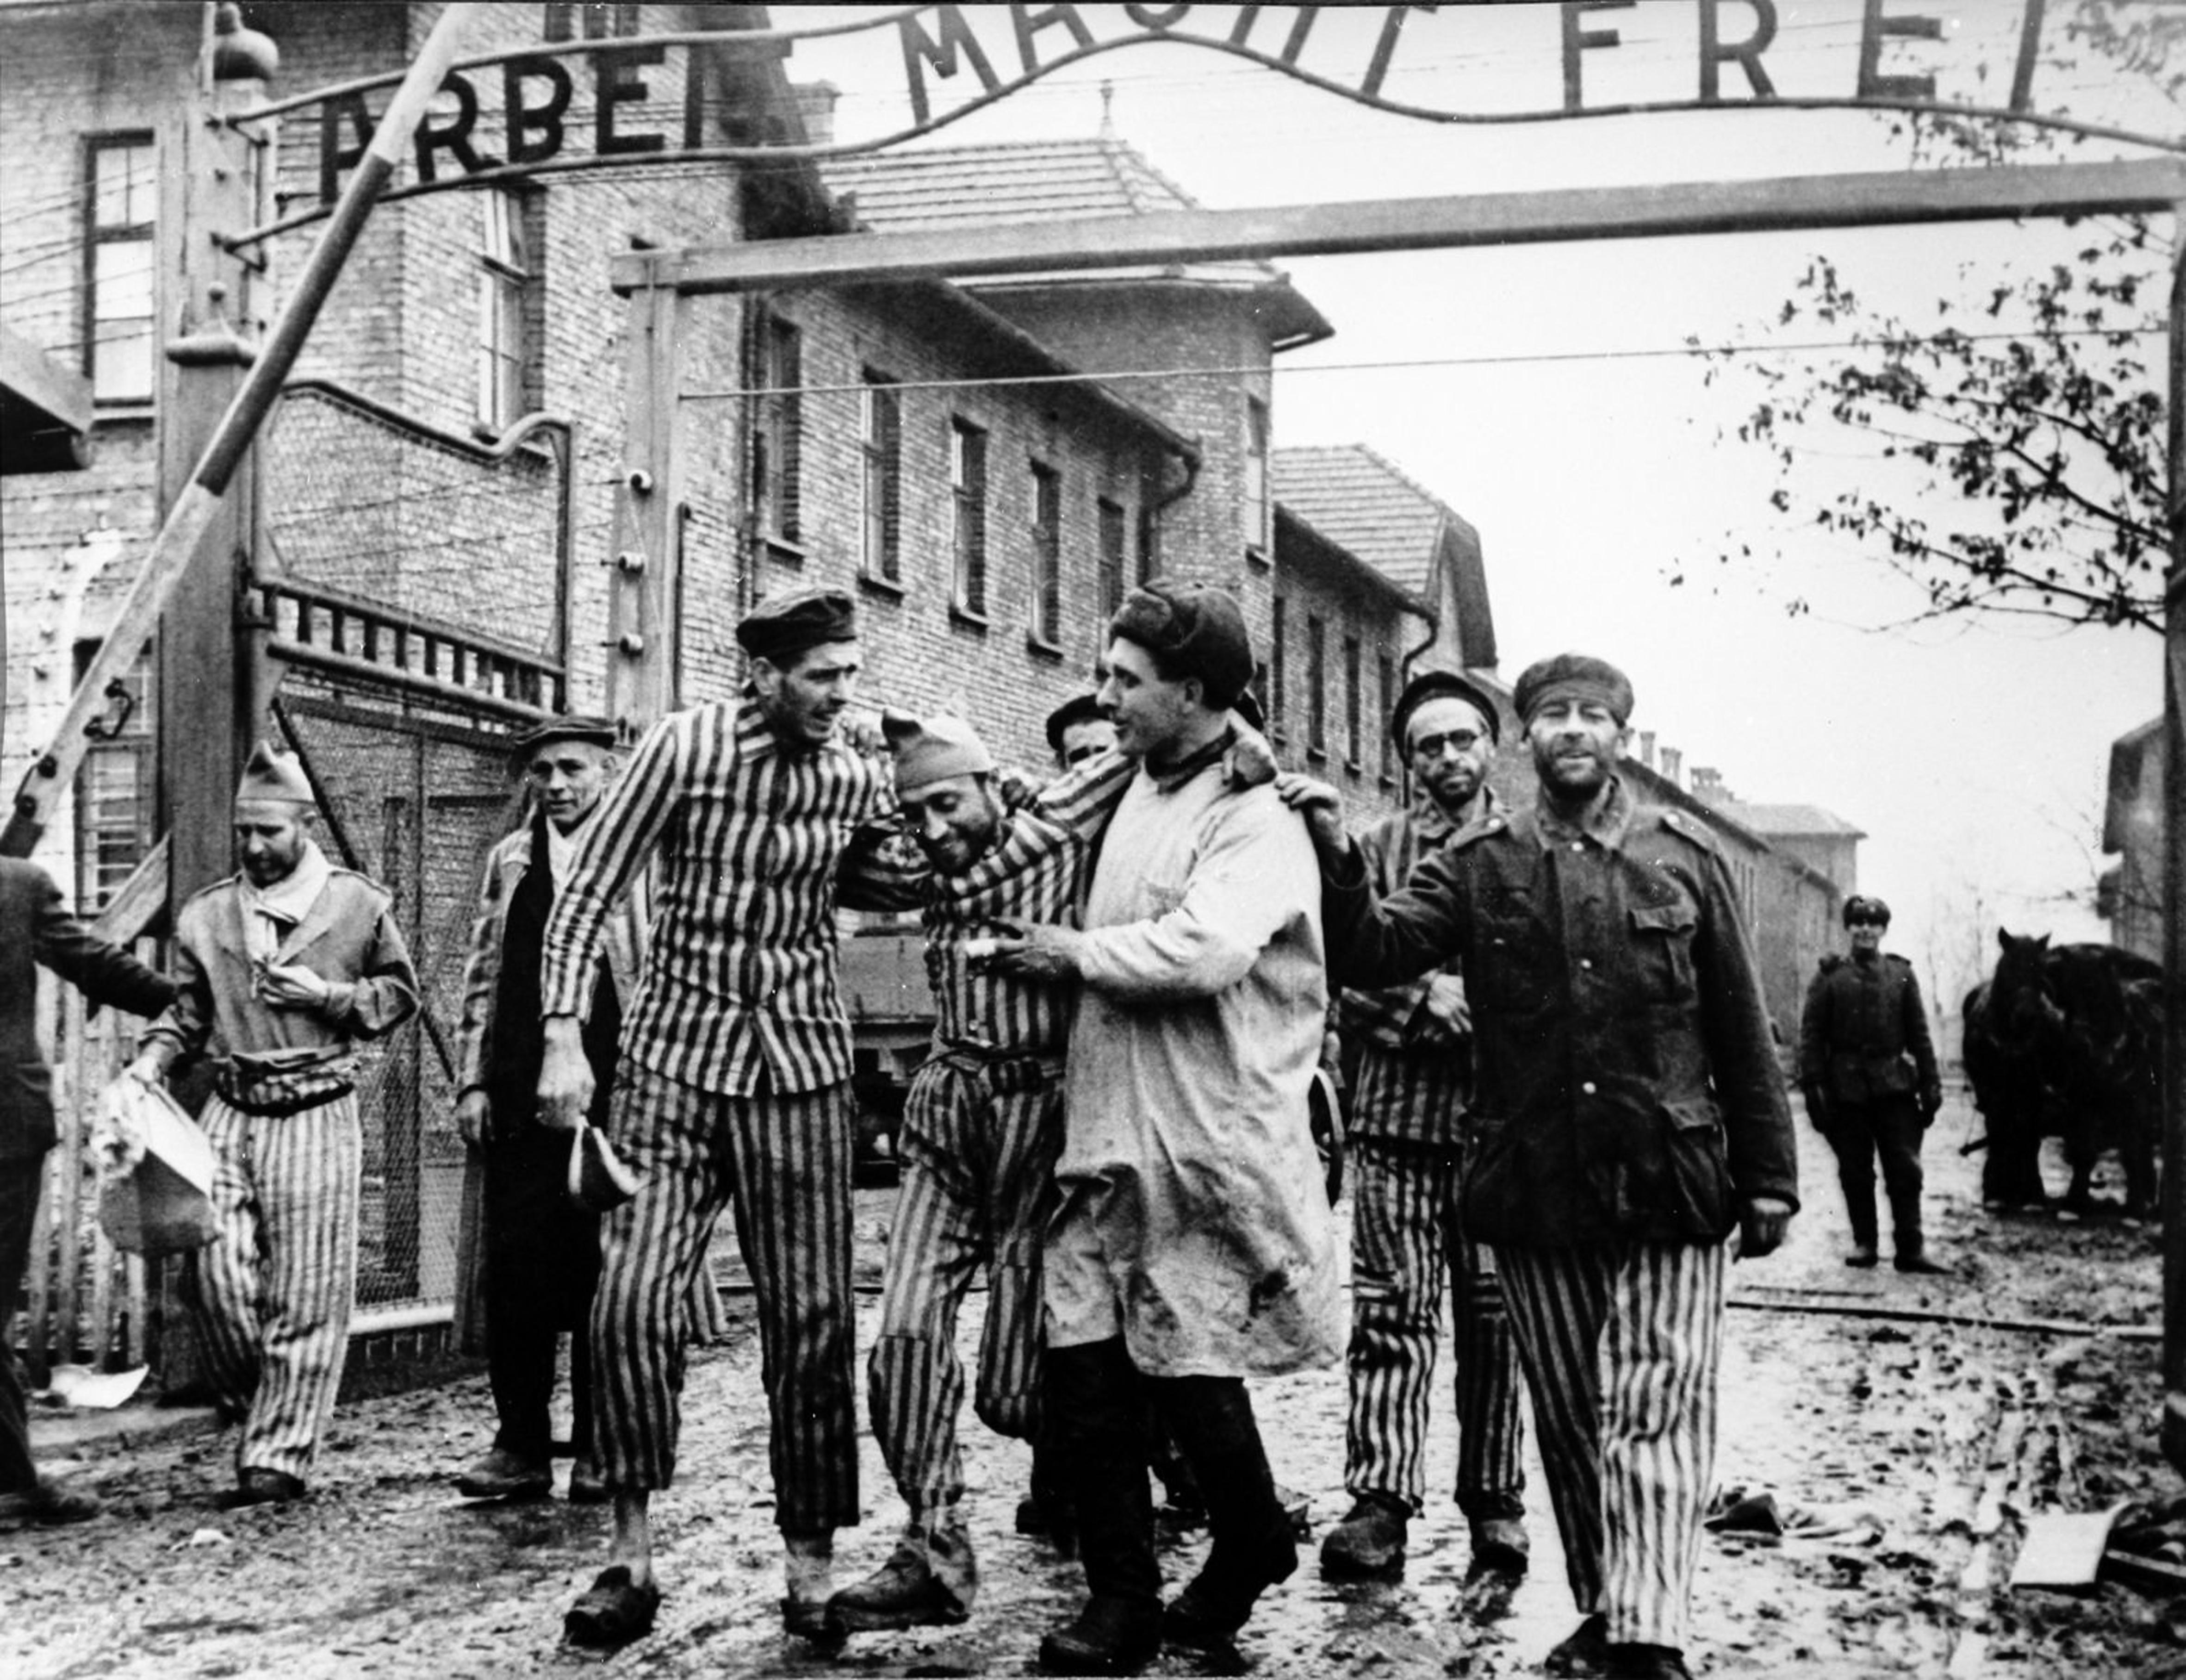 where is auschwitz, how many people died in the concentration camp